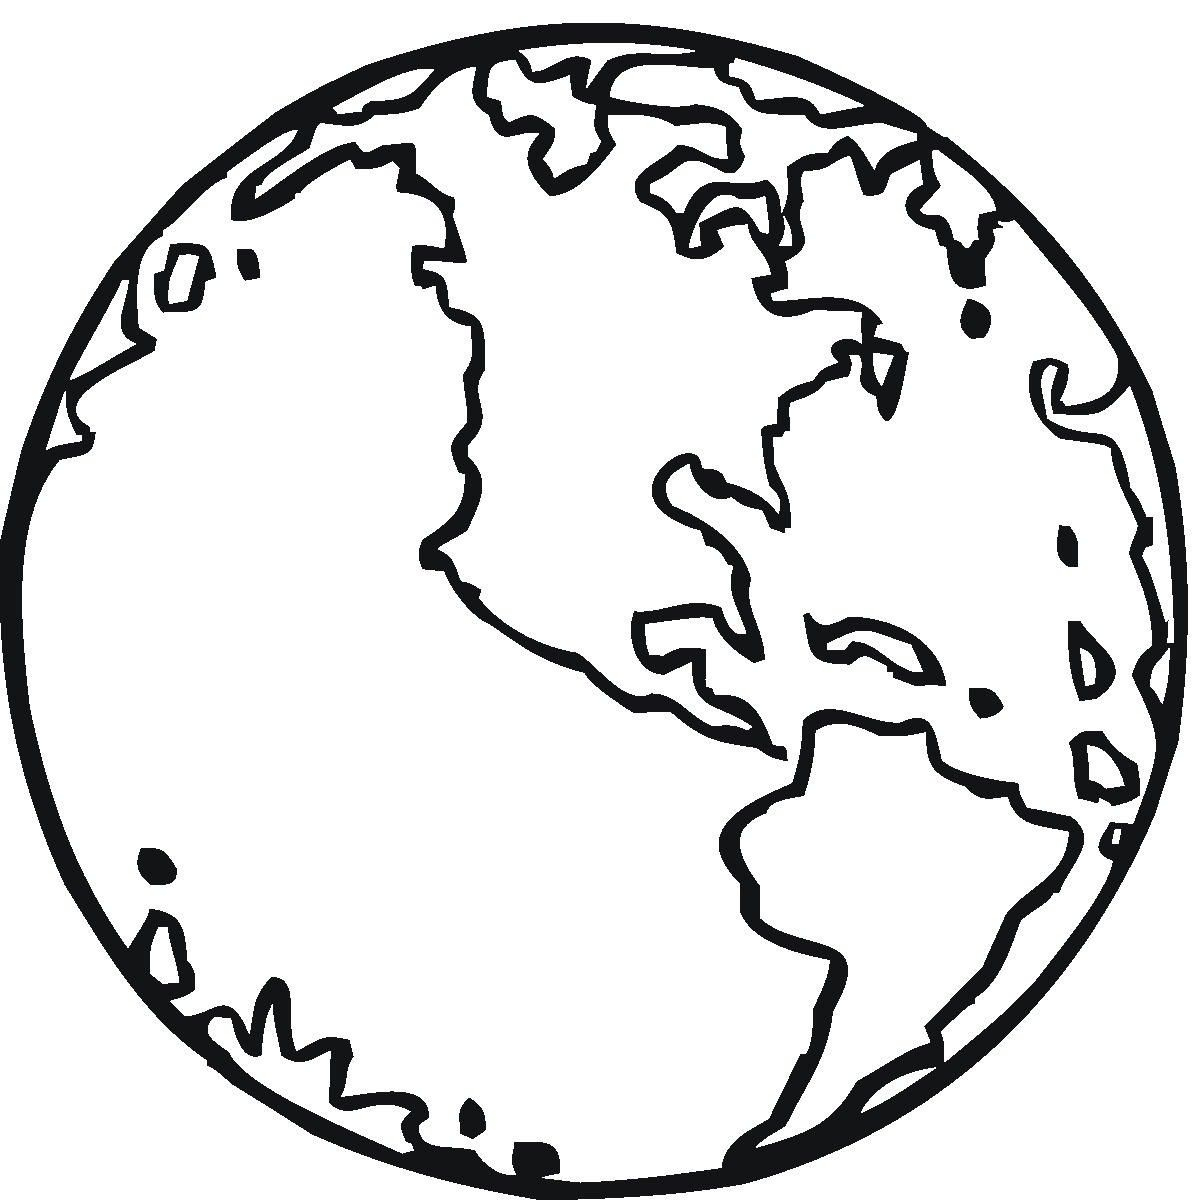 Free Printable Earth Coloring Pages For Kids | Stuff | Pinterest - Earth Coloring Pages Free Printable